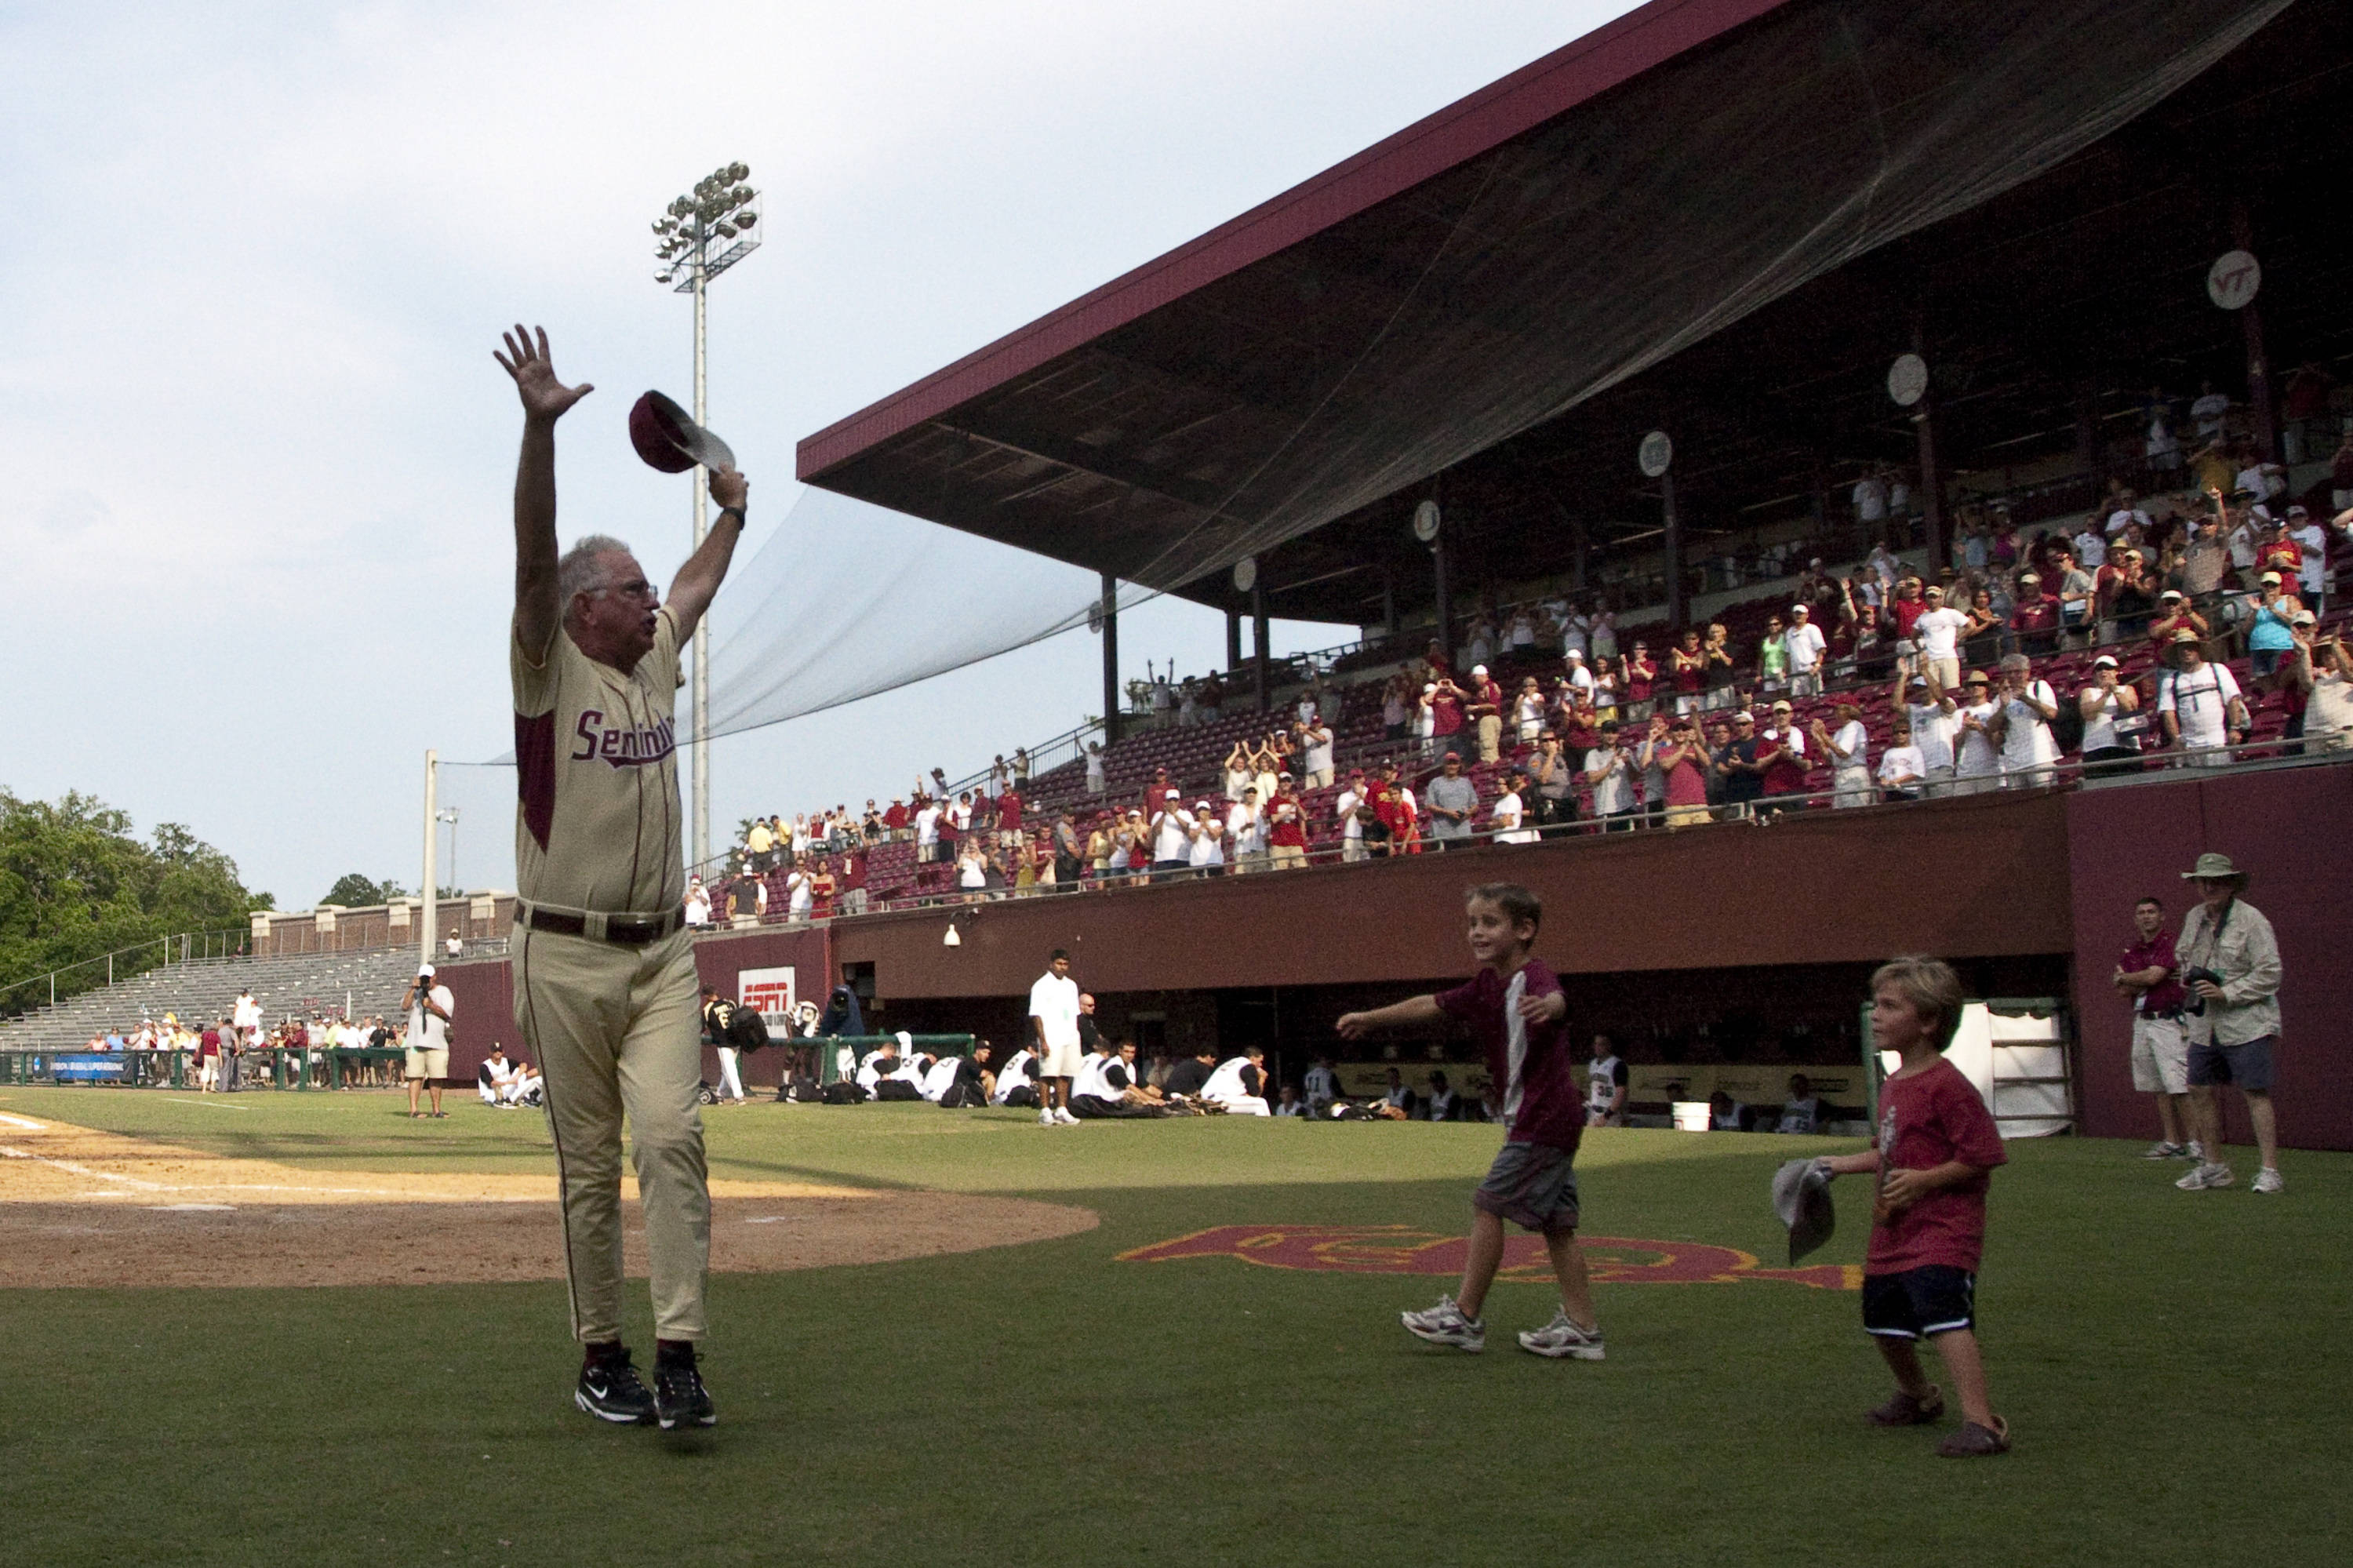 Mike Martin (11) waves to a cheering crowd after thanking them for their support.